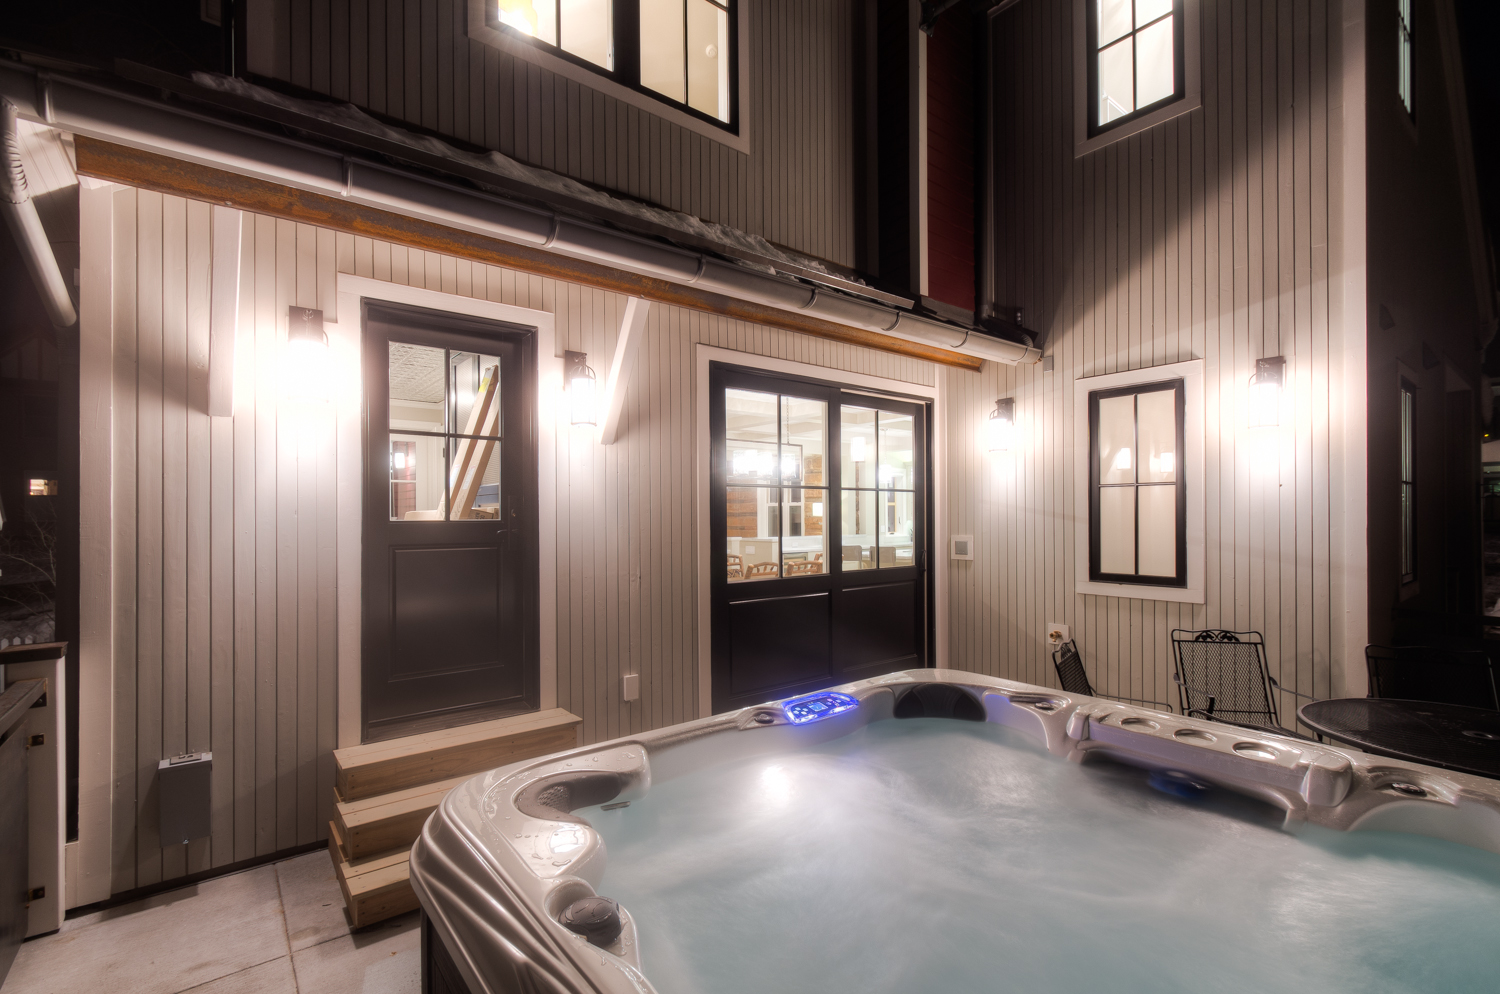 Private Outdoor Hot Tub on the Patio of Vacation Home in Telluride